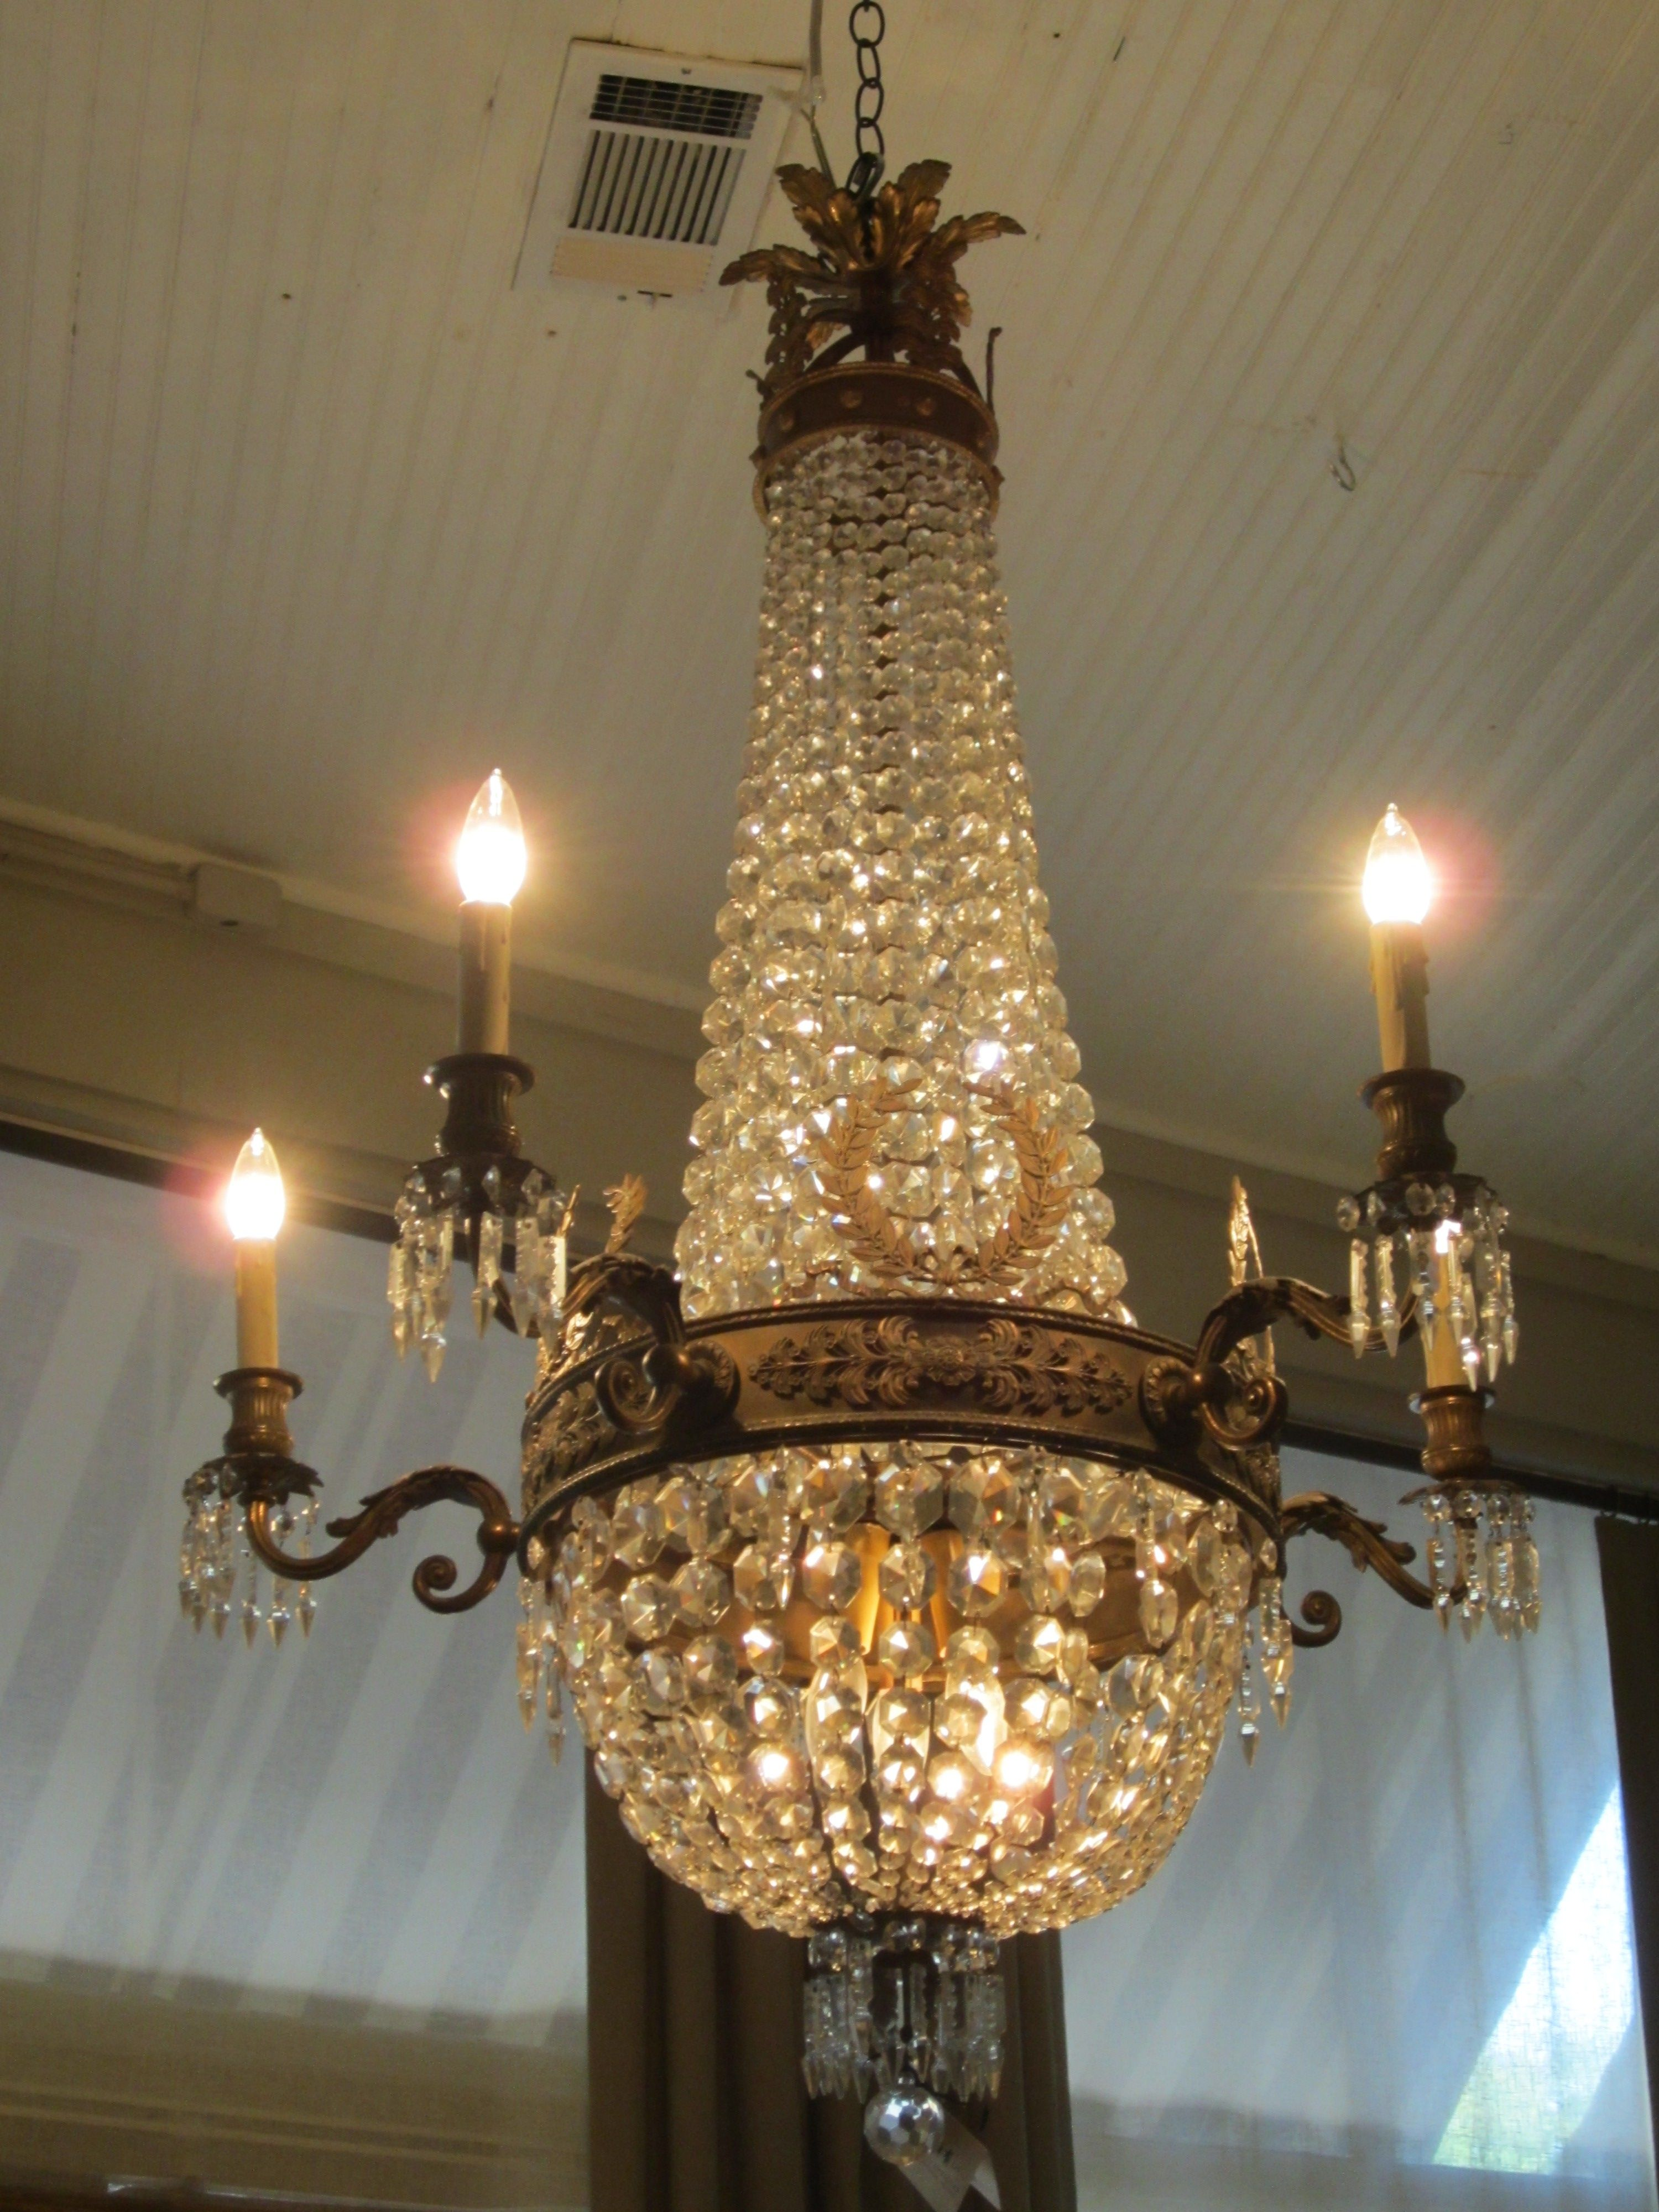 French empire chandy loveif only my ceiling was high enough or my chandelier lamps aloadofball Images